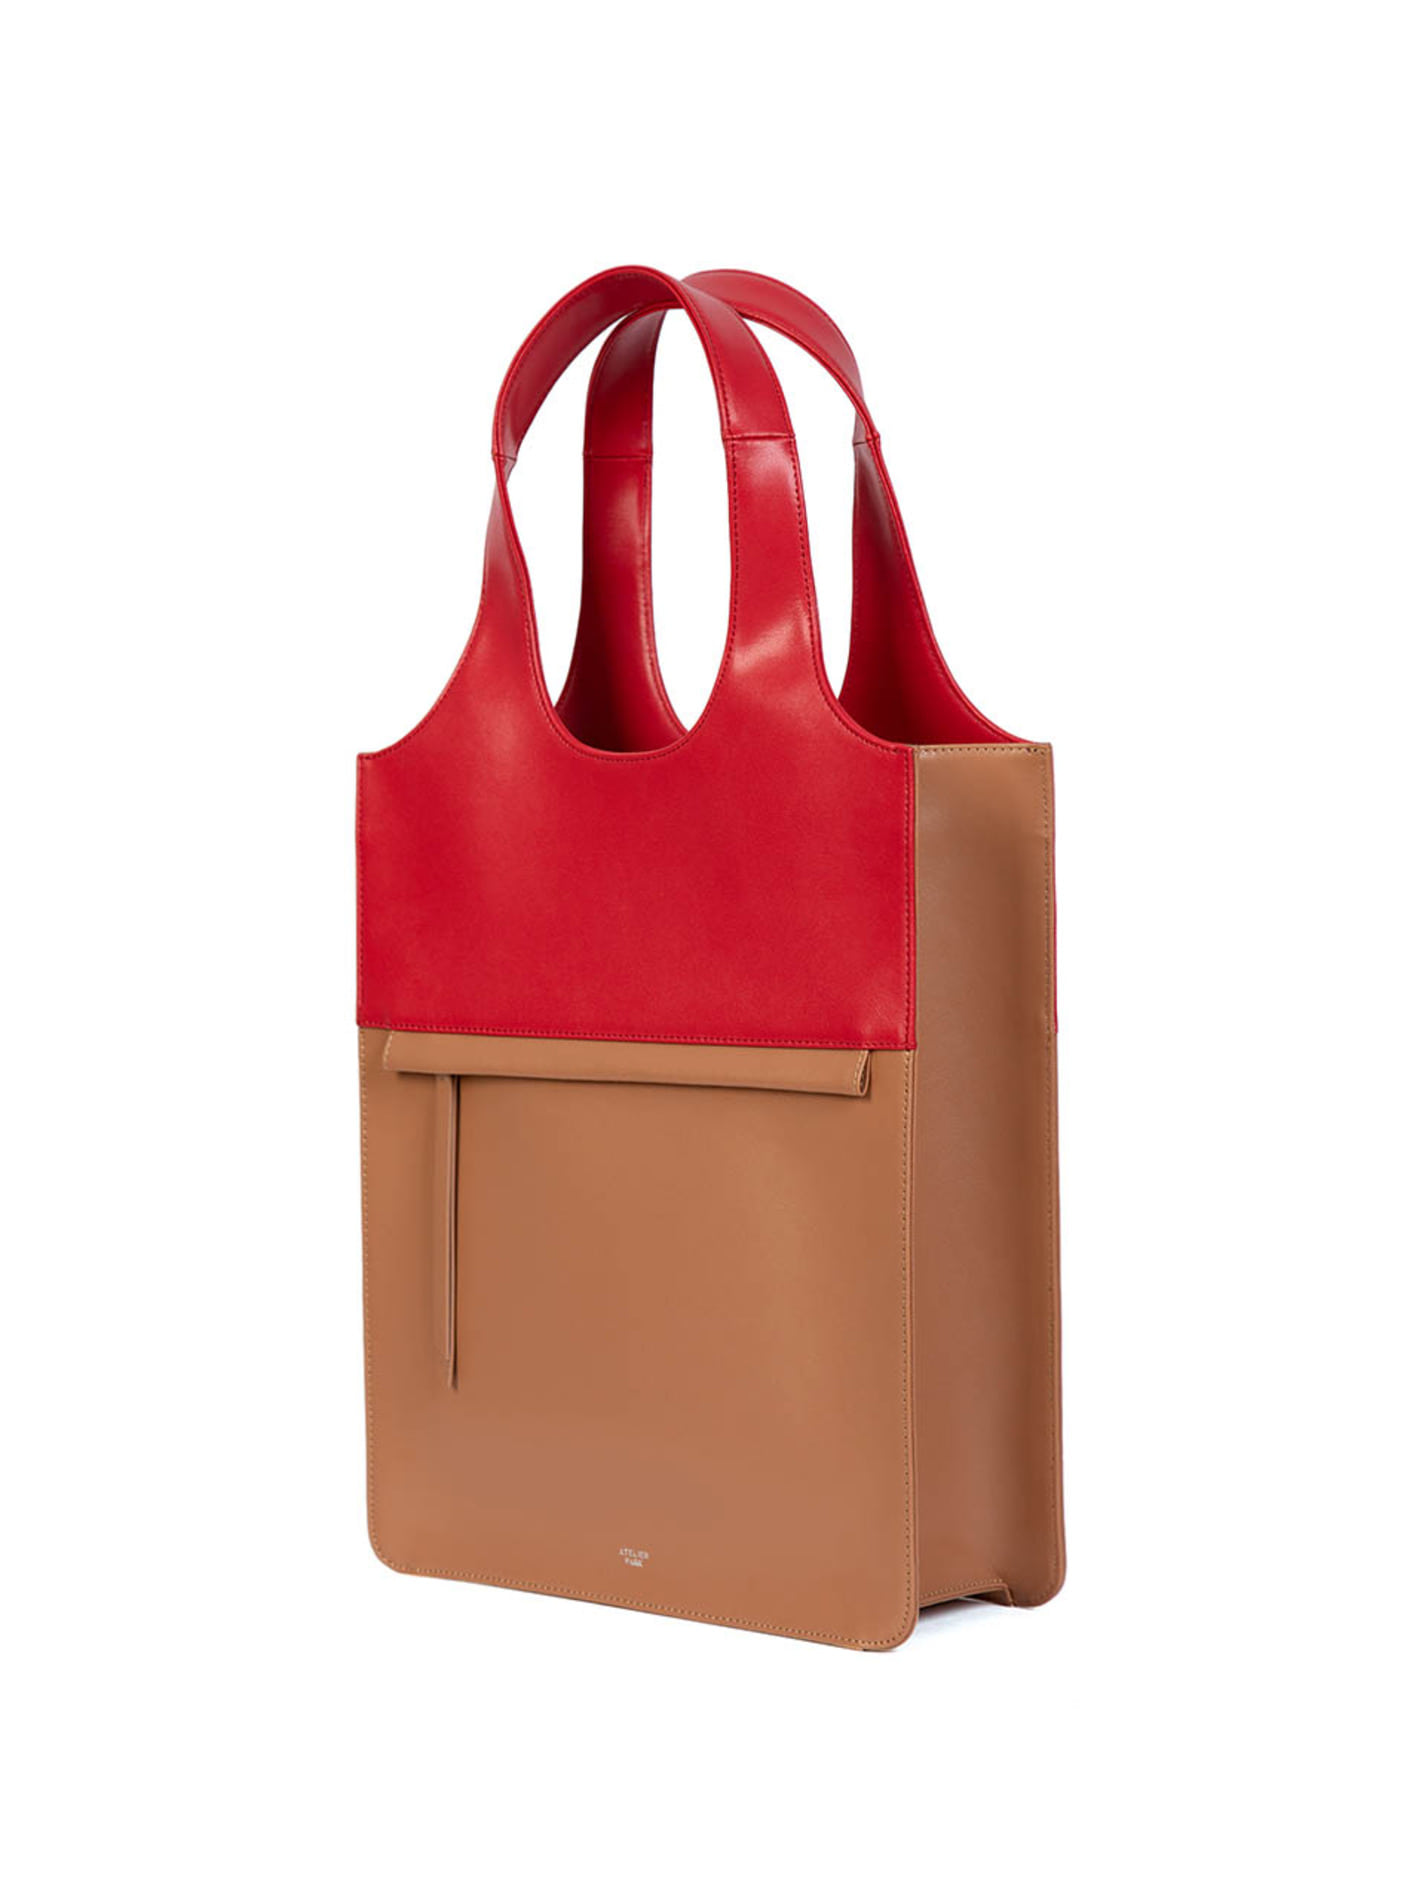 LINE TOTE BAG - BIG BEIGE